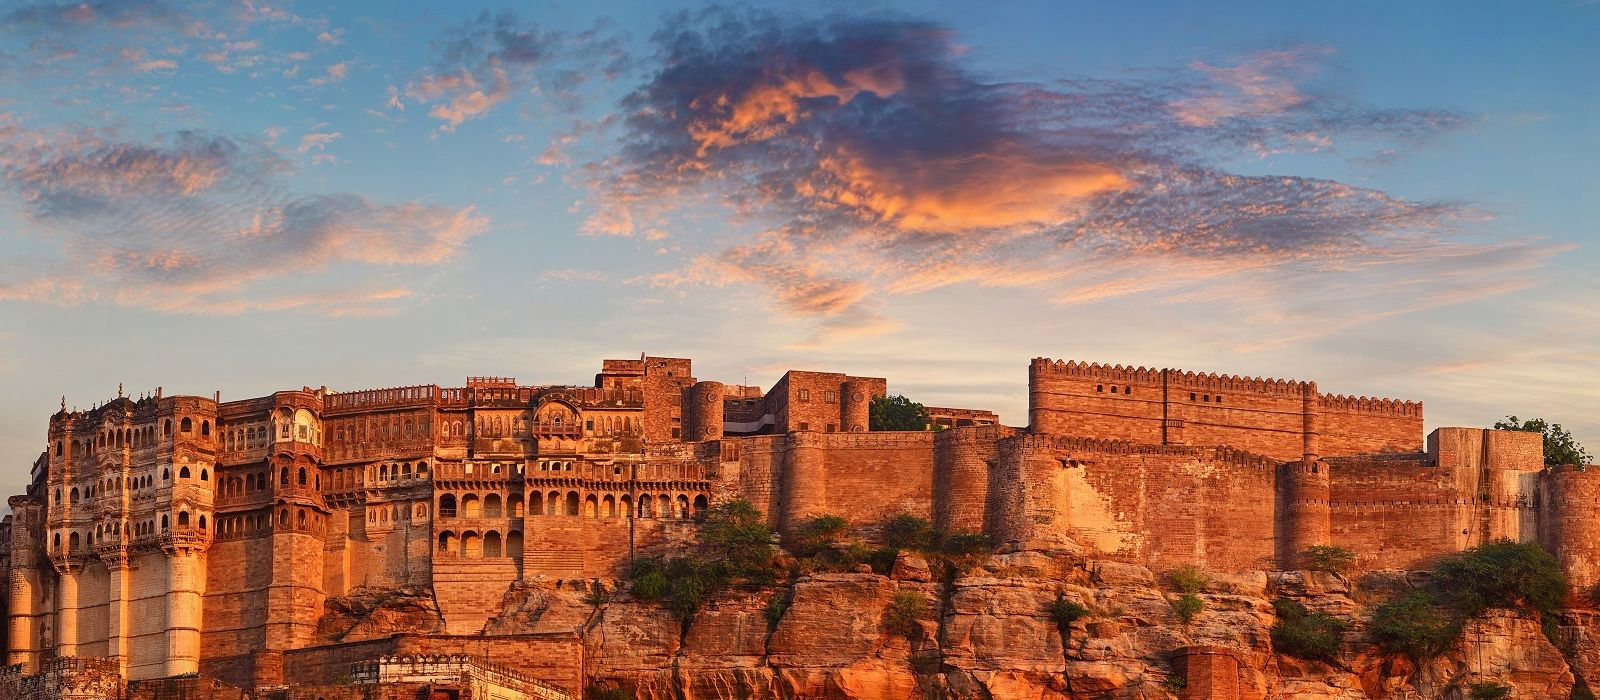 North Indian Luxury: Heritage Cities and Regal Palaces Tour Trip 6